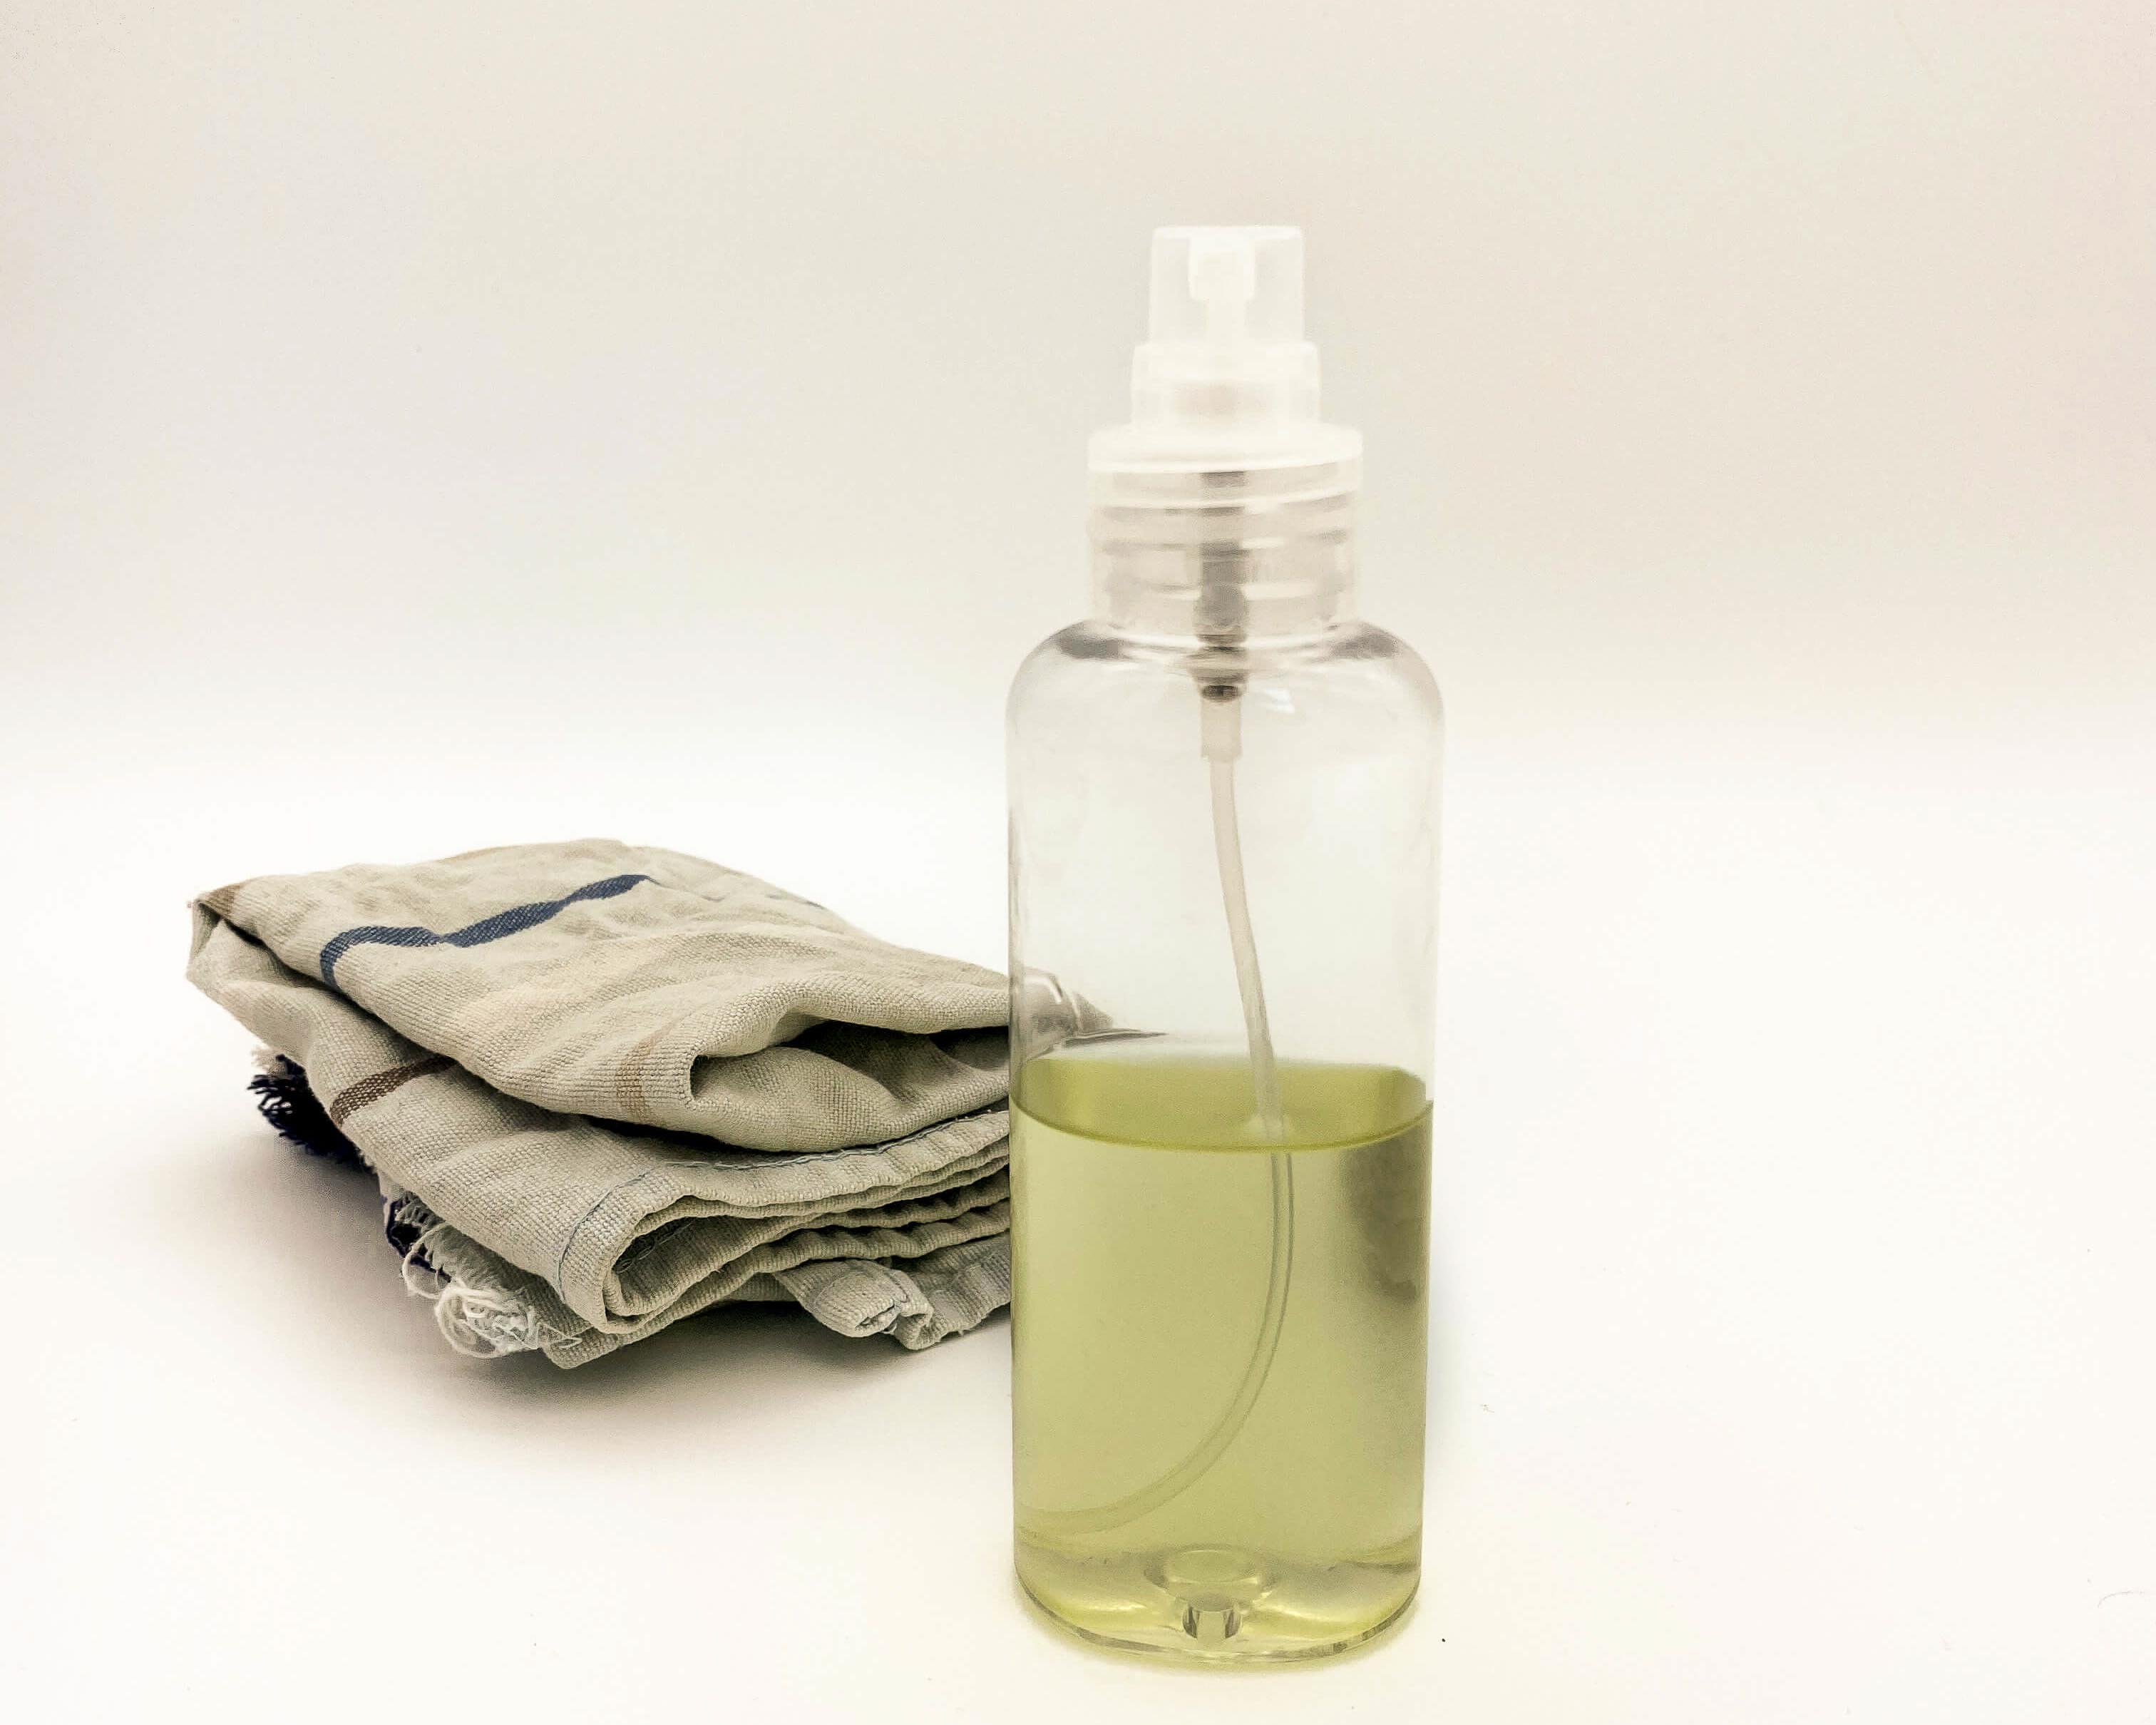 DIY cleaning spray for surfaces